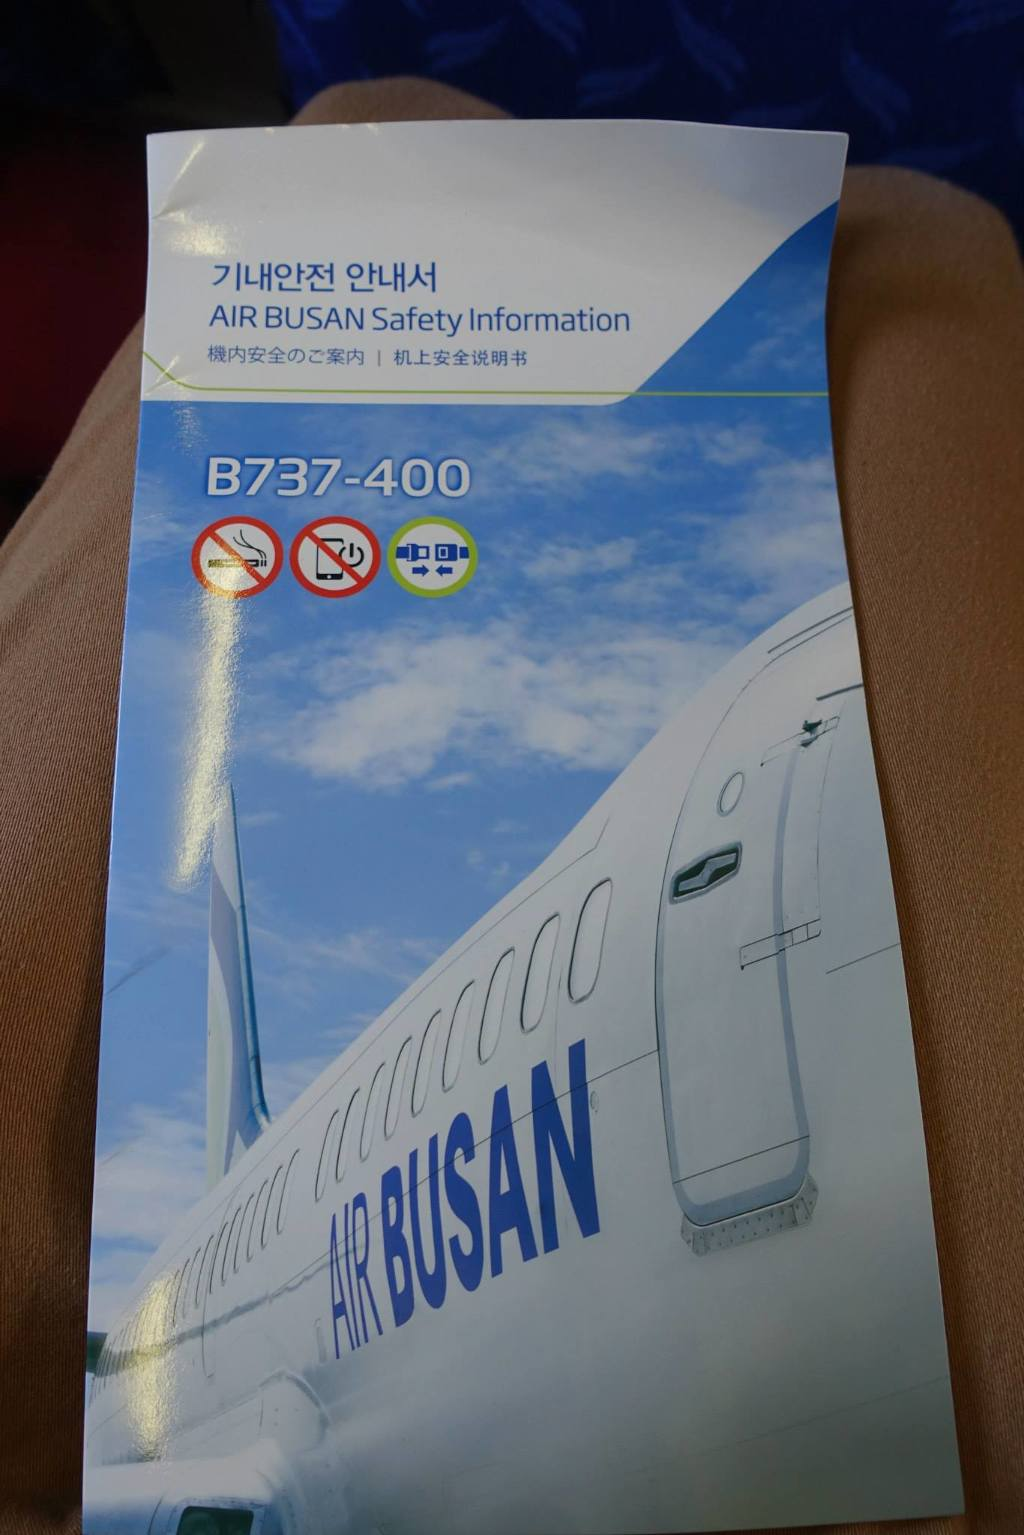 JeJu Air  Airlines Safety information card  B737-800